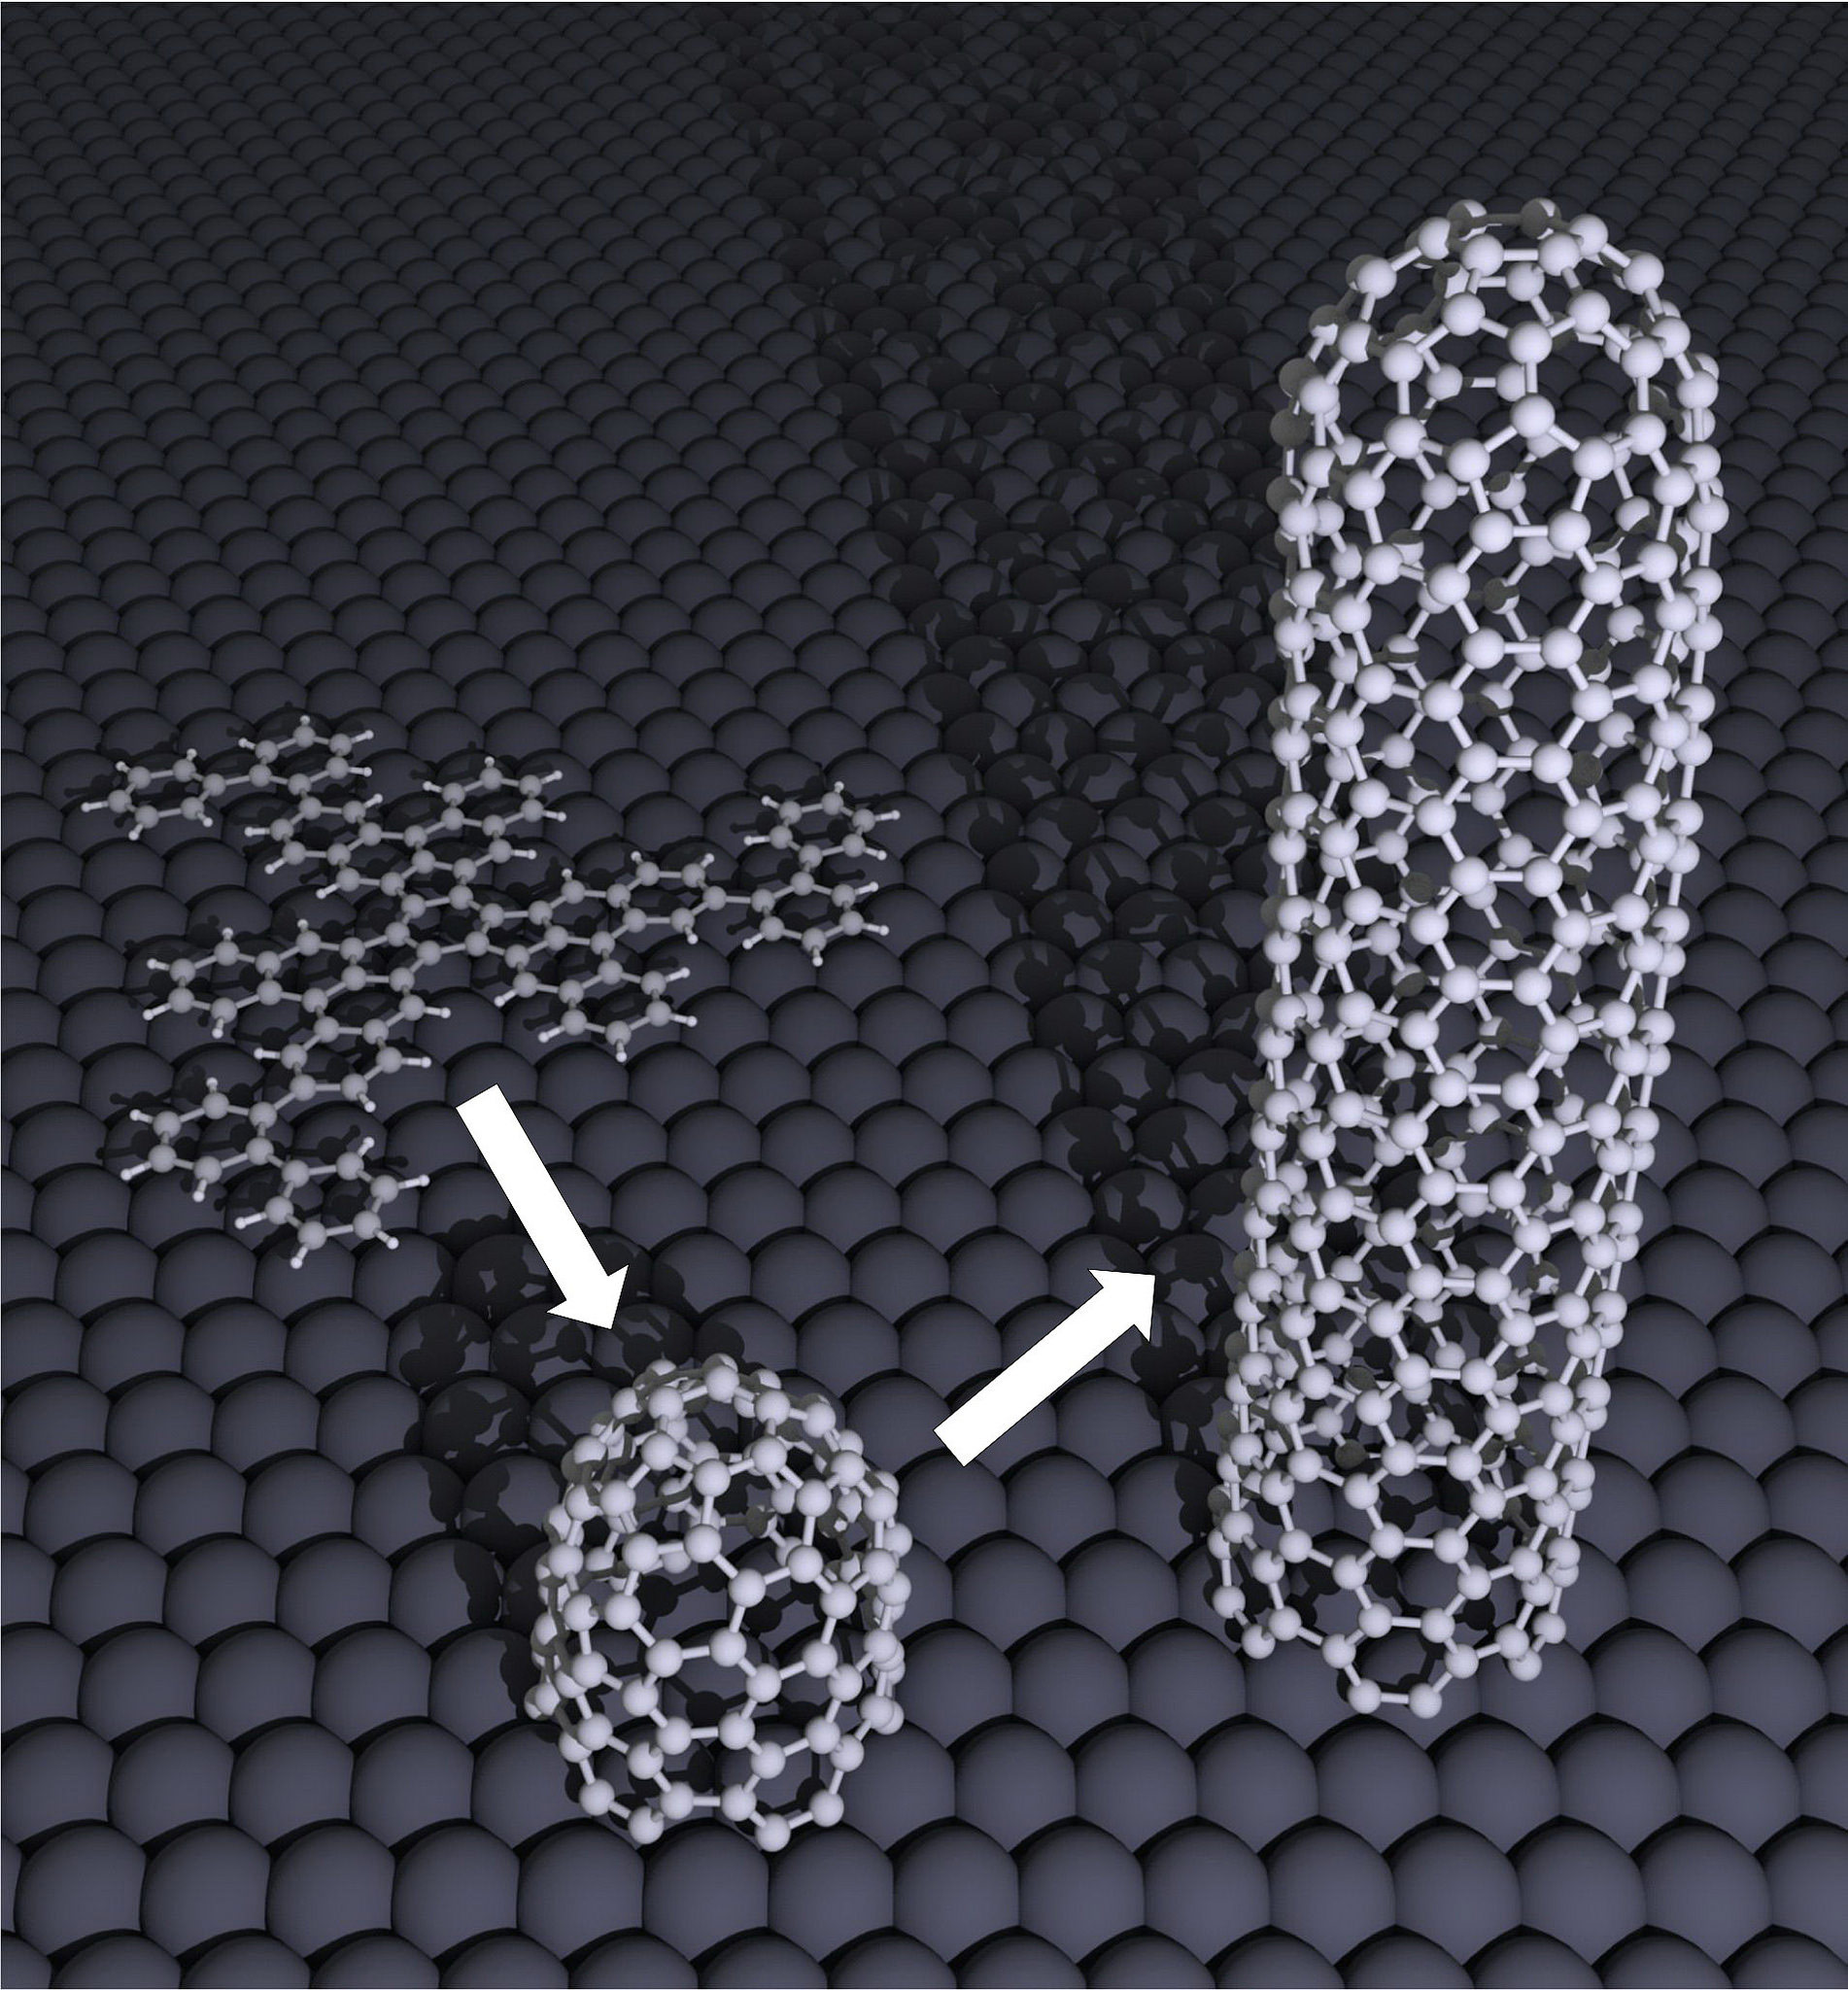 singles in carbon Single carbon nanotube nanopores by growing and isolating ultra-long (1 cm) swnt, we have been able to form the longest, highest-aspect ratio nanopores ever achieved with unbroken, persistent interior diameters between 1 and 2 nm, these pores allow us to study transport phenomena on an unprecedented scale.